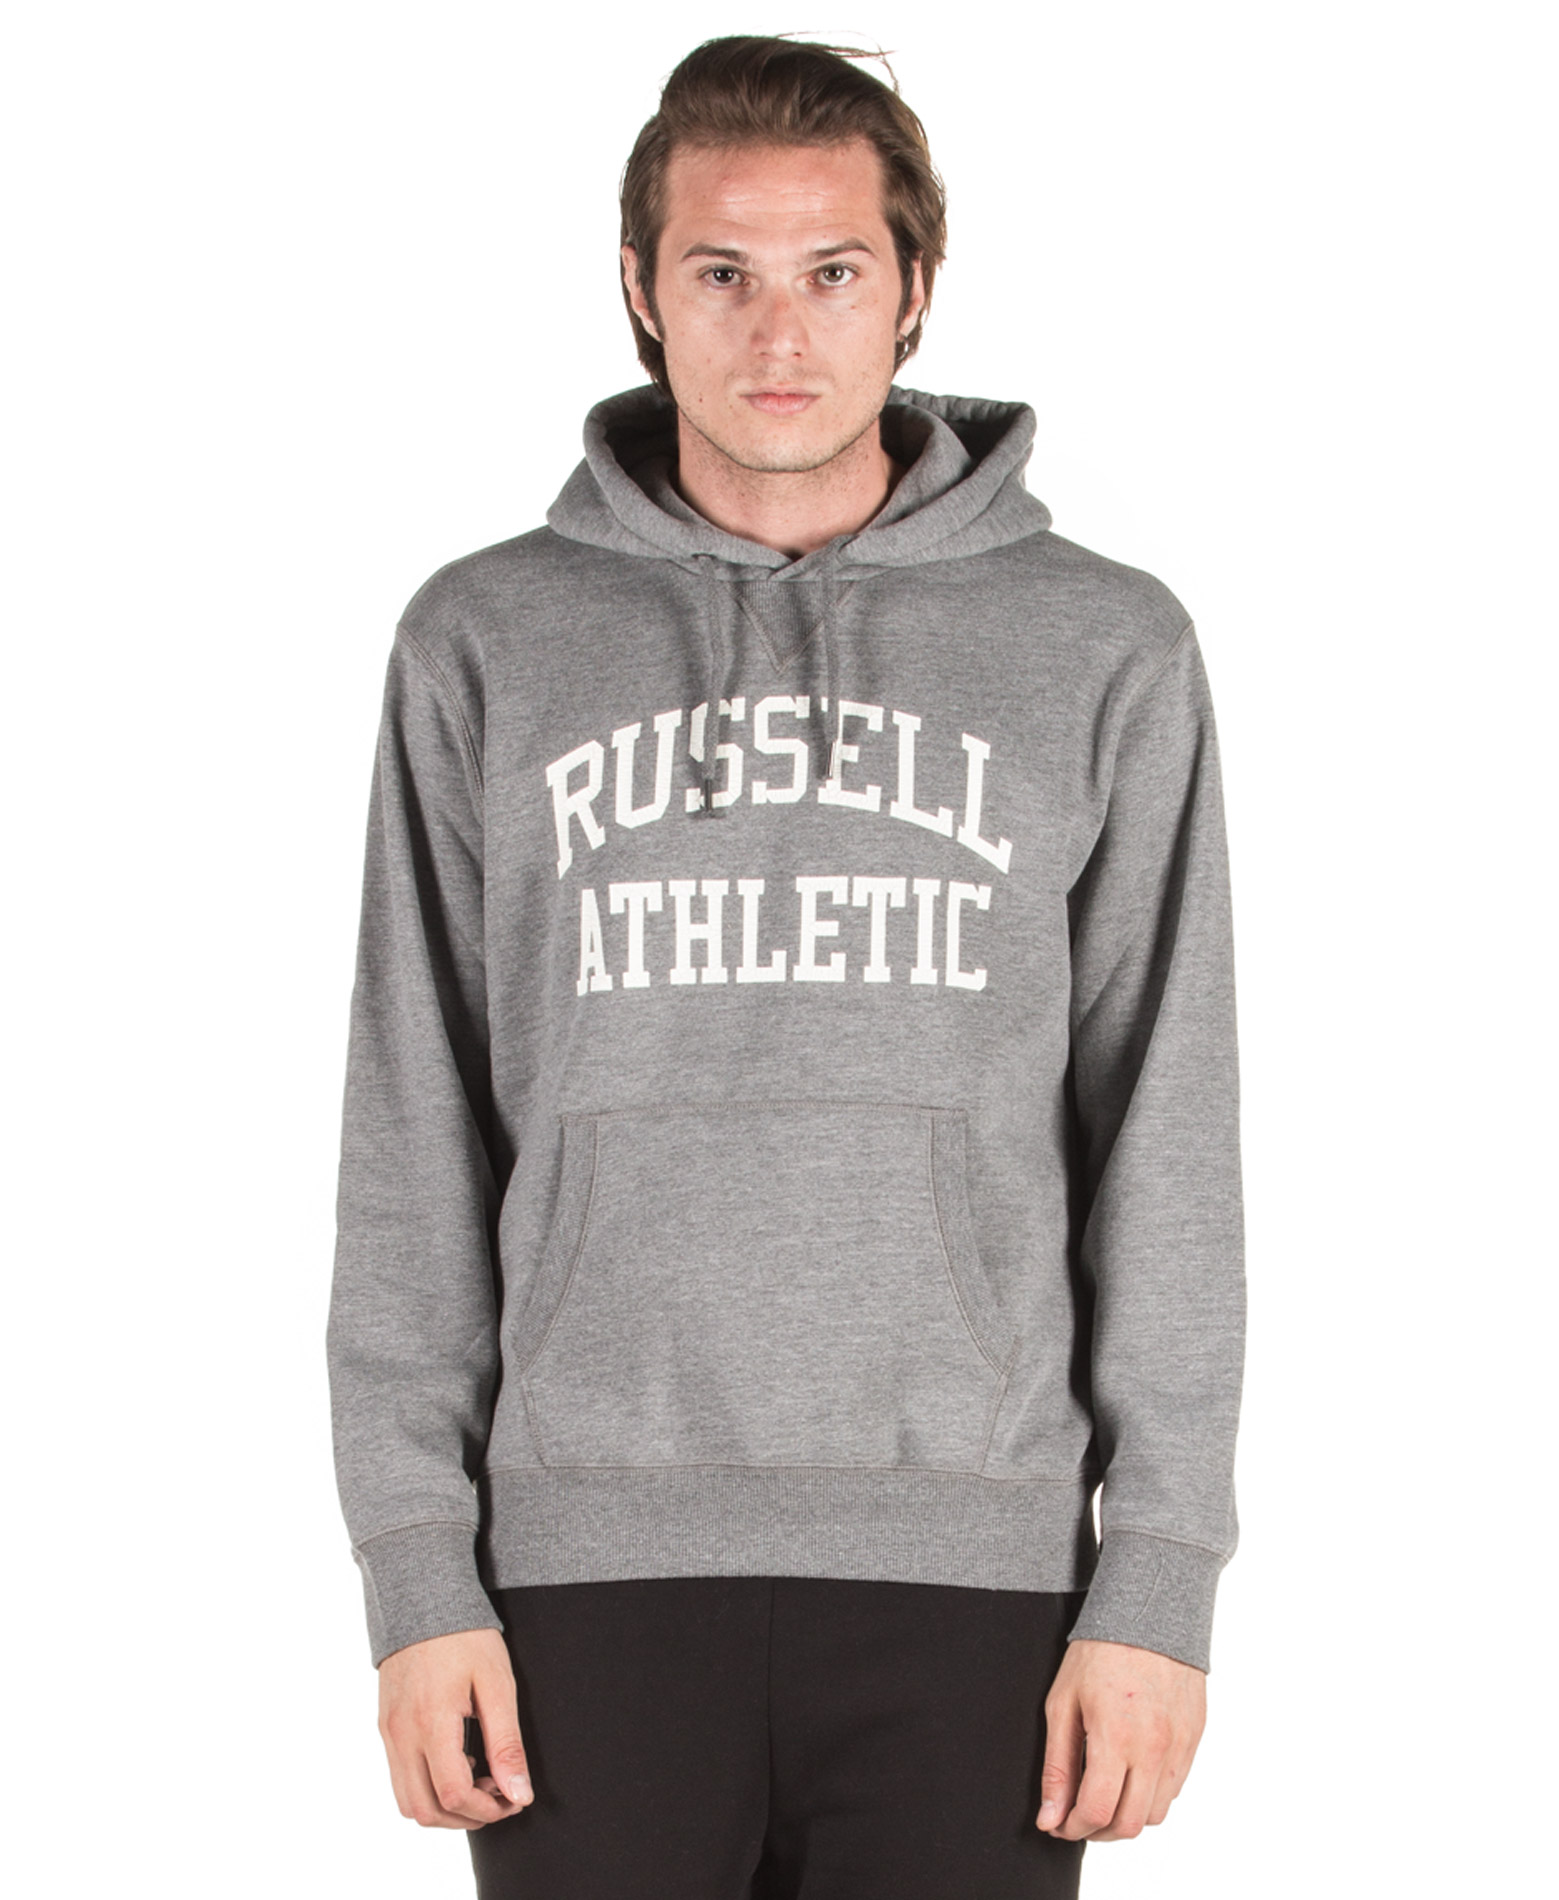 Russell Athletic A8-010-2-090 Γκρί